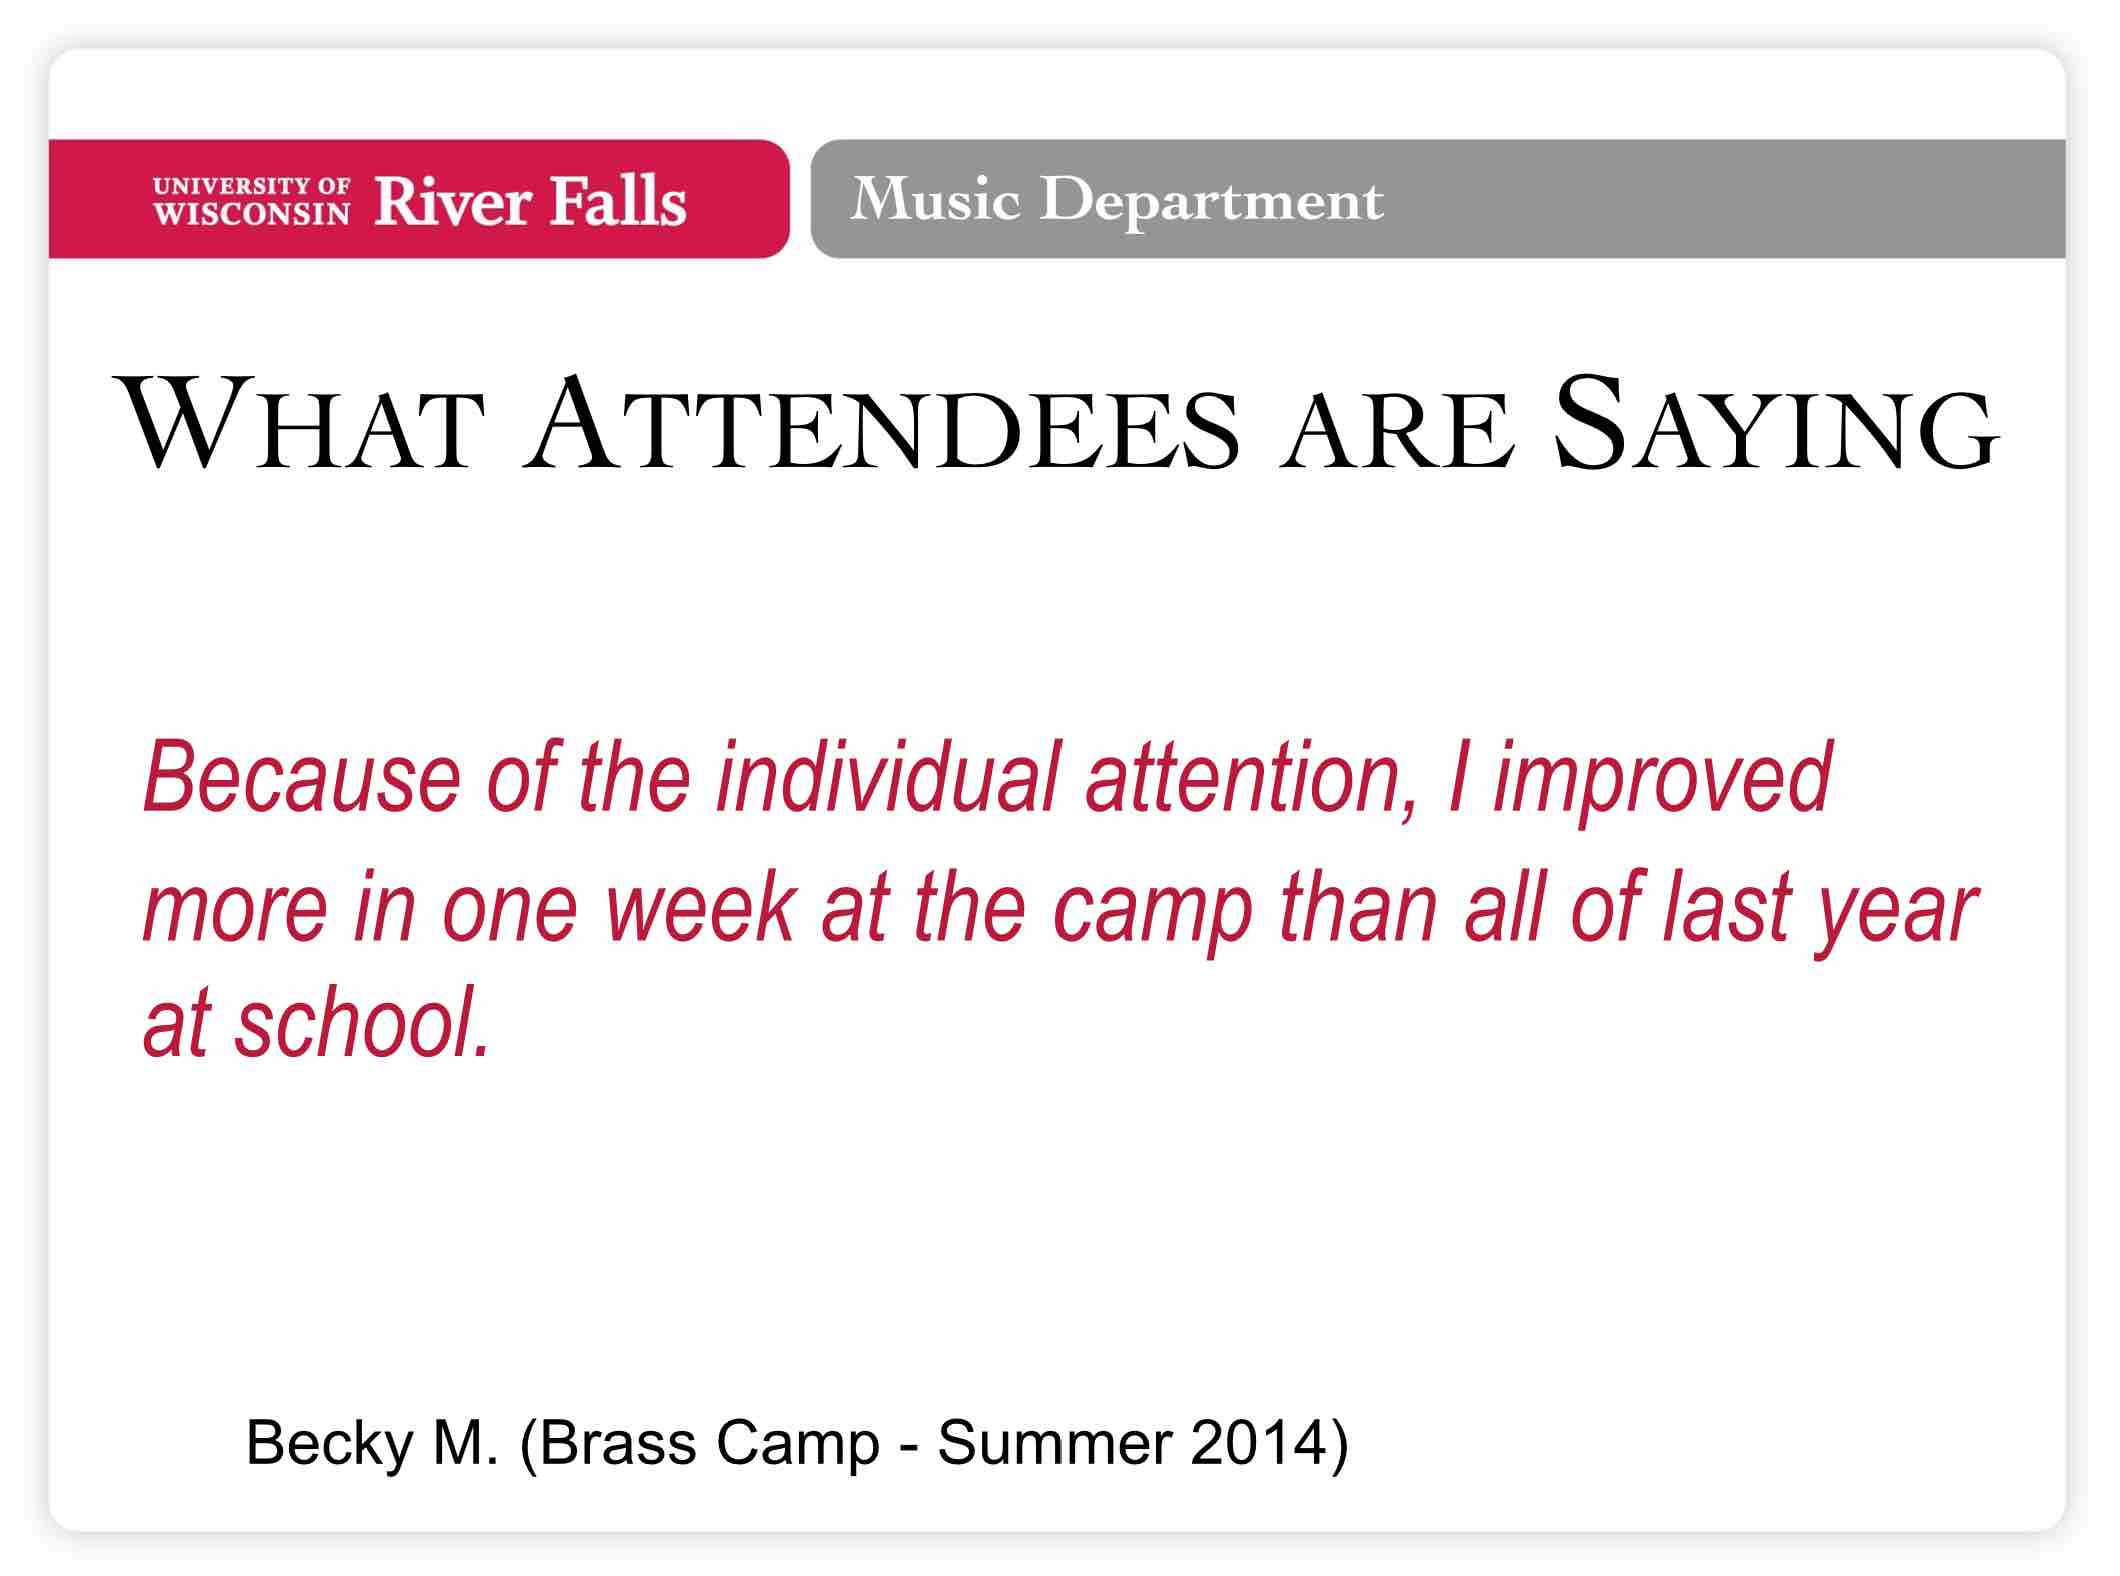 Quote - Brass Camp